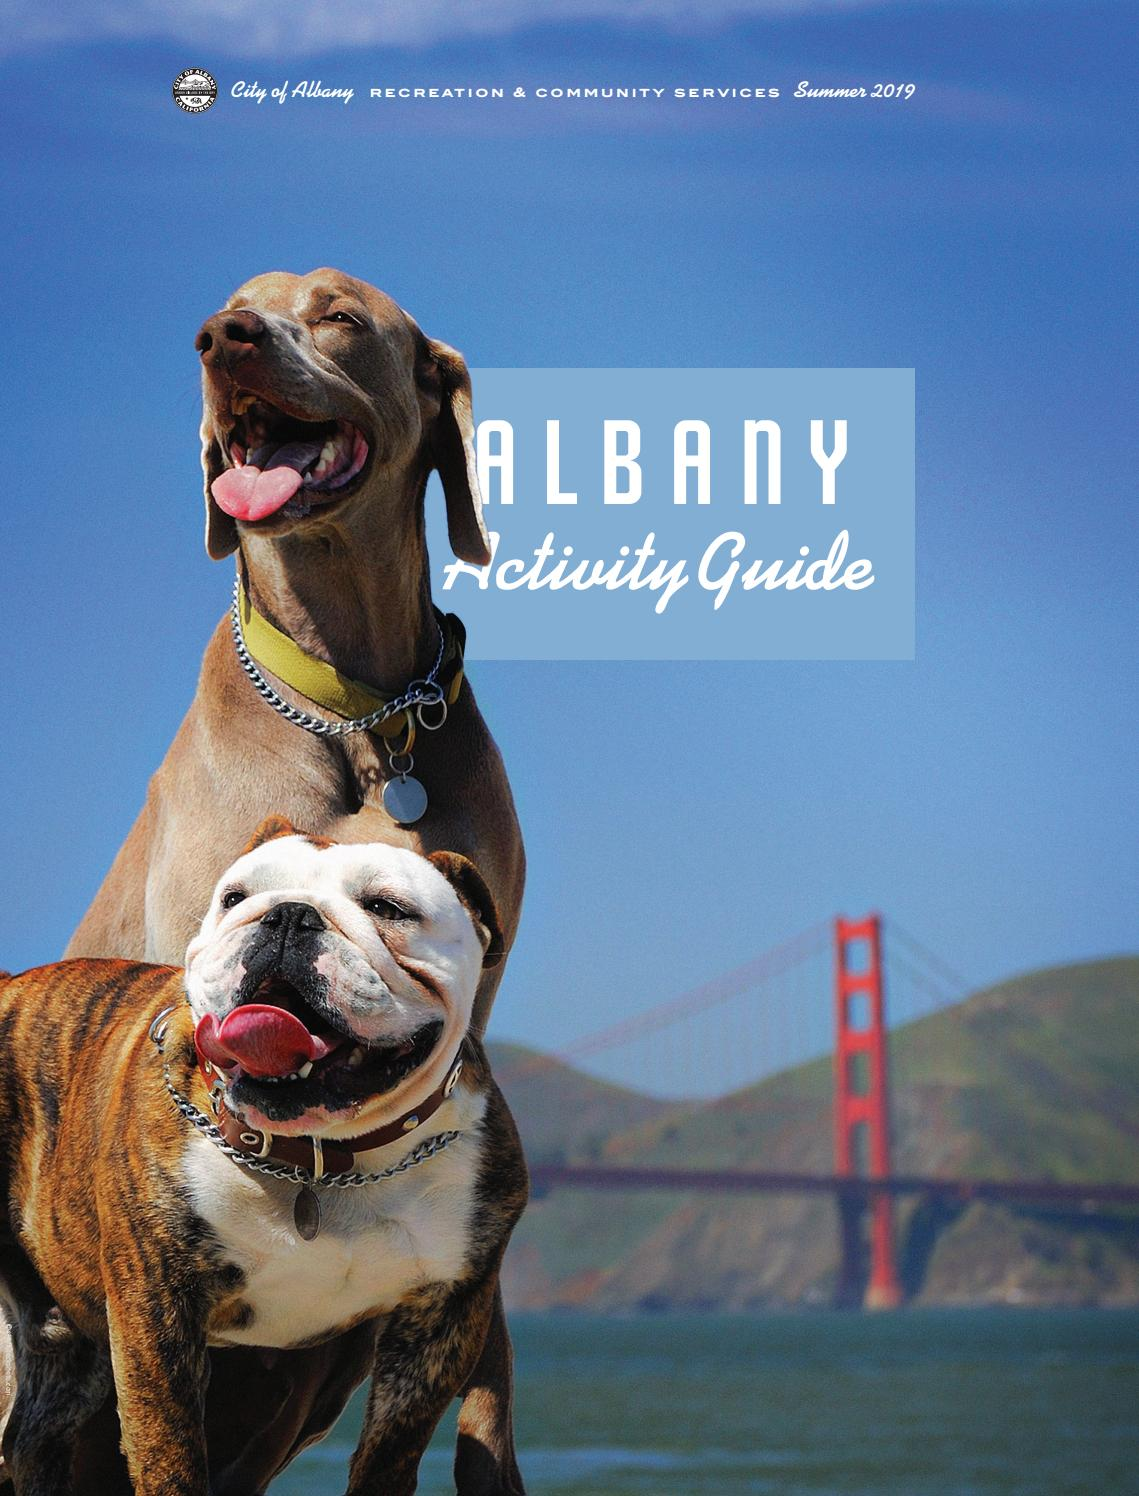 hight resolution of 2019 city of albany recreation community services activity guide